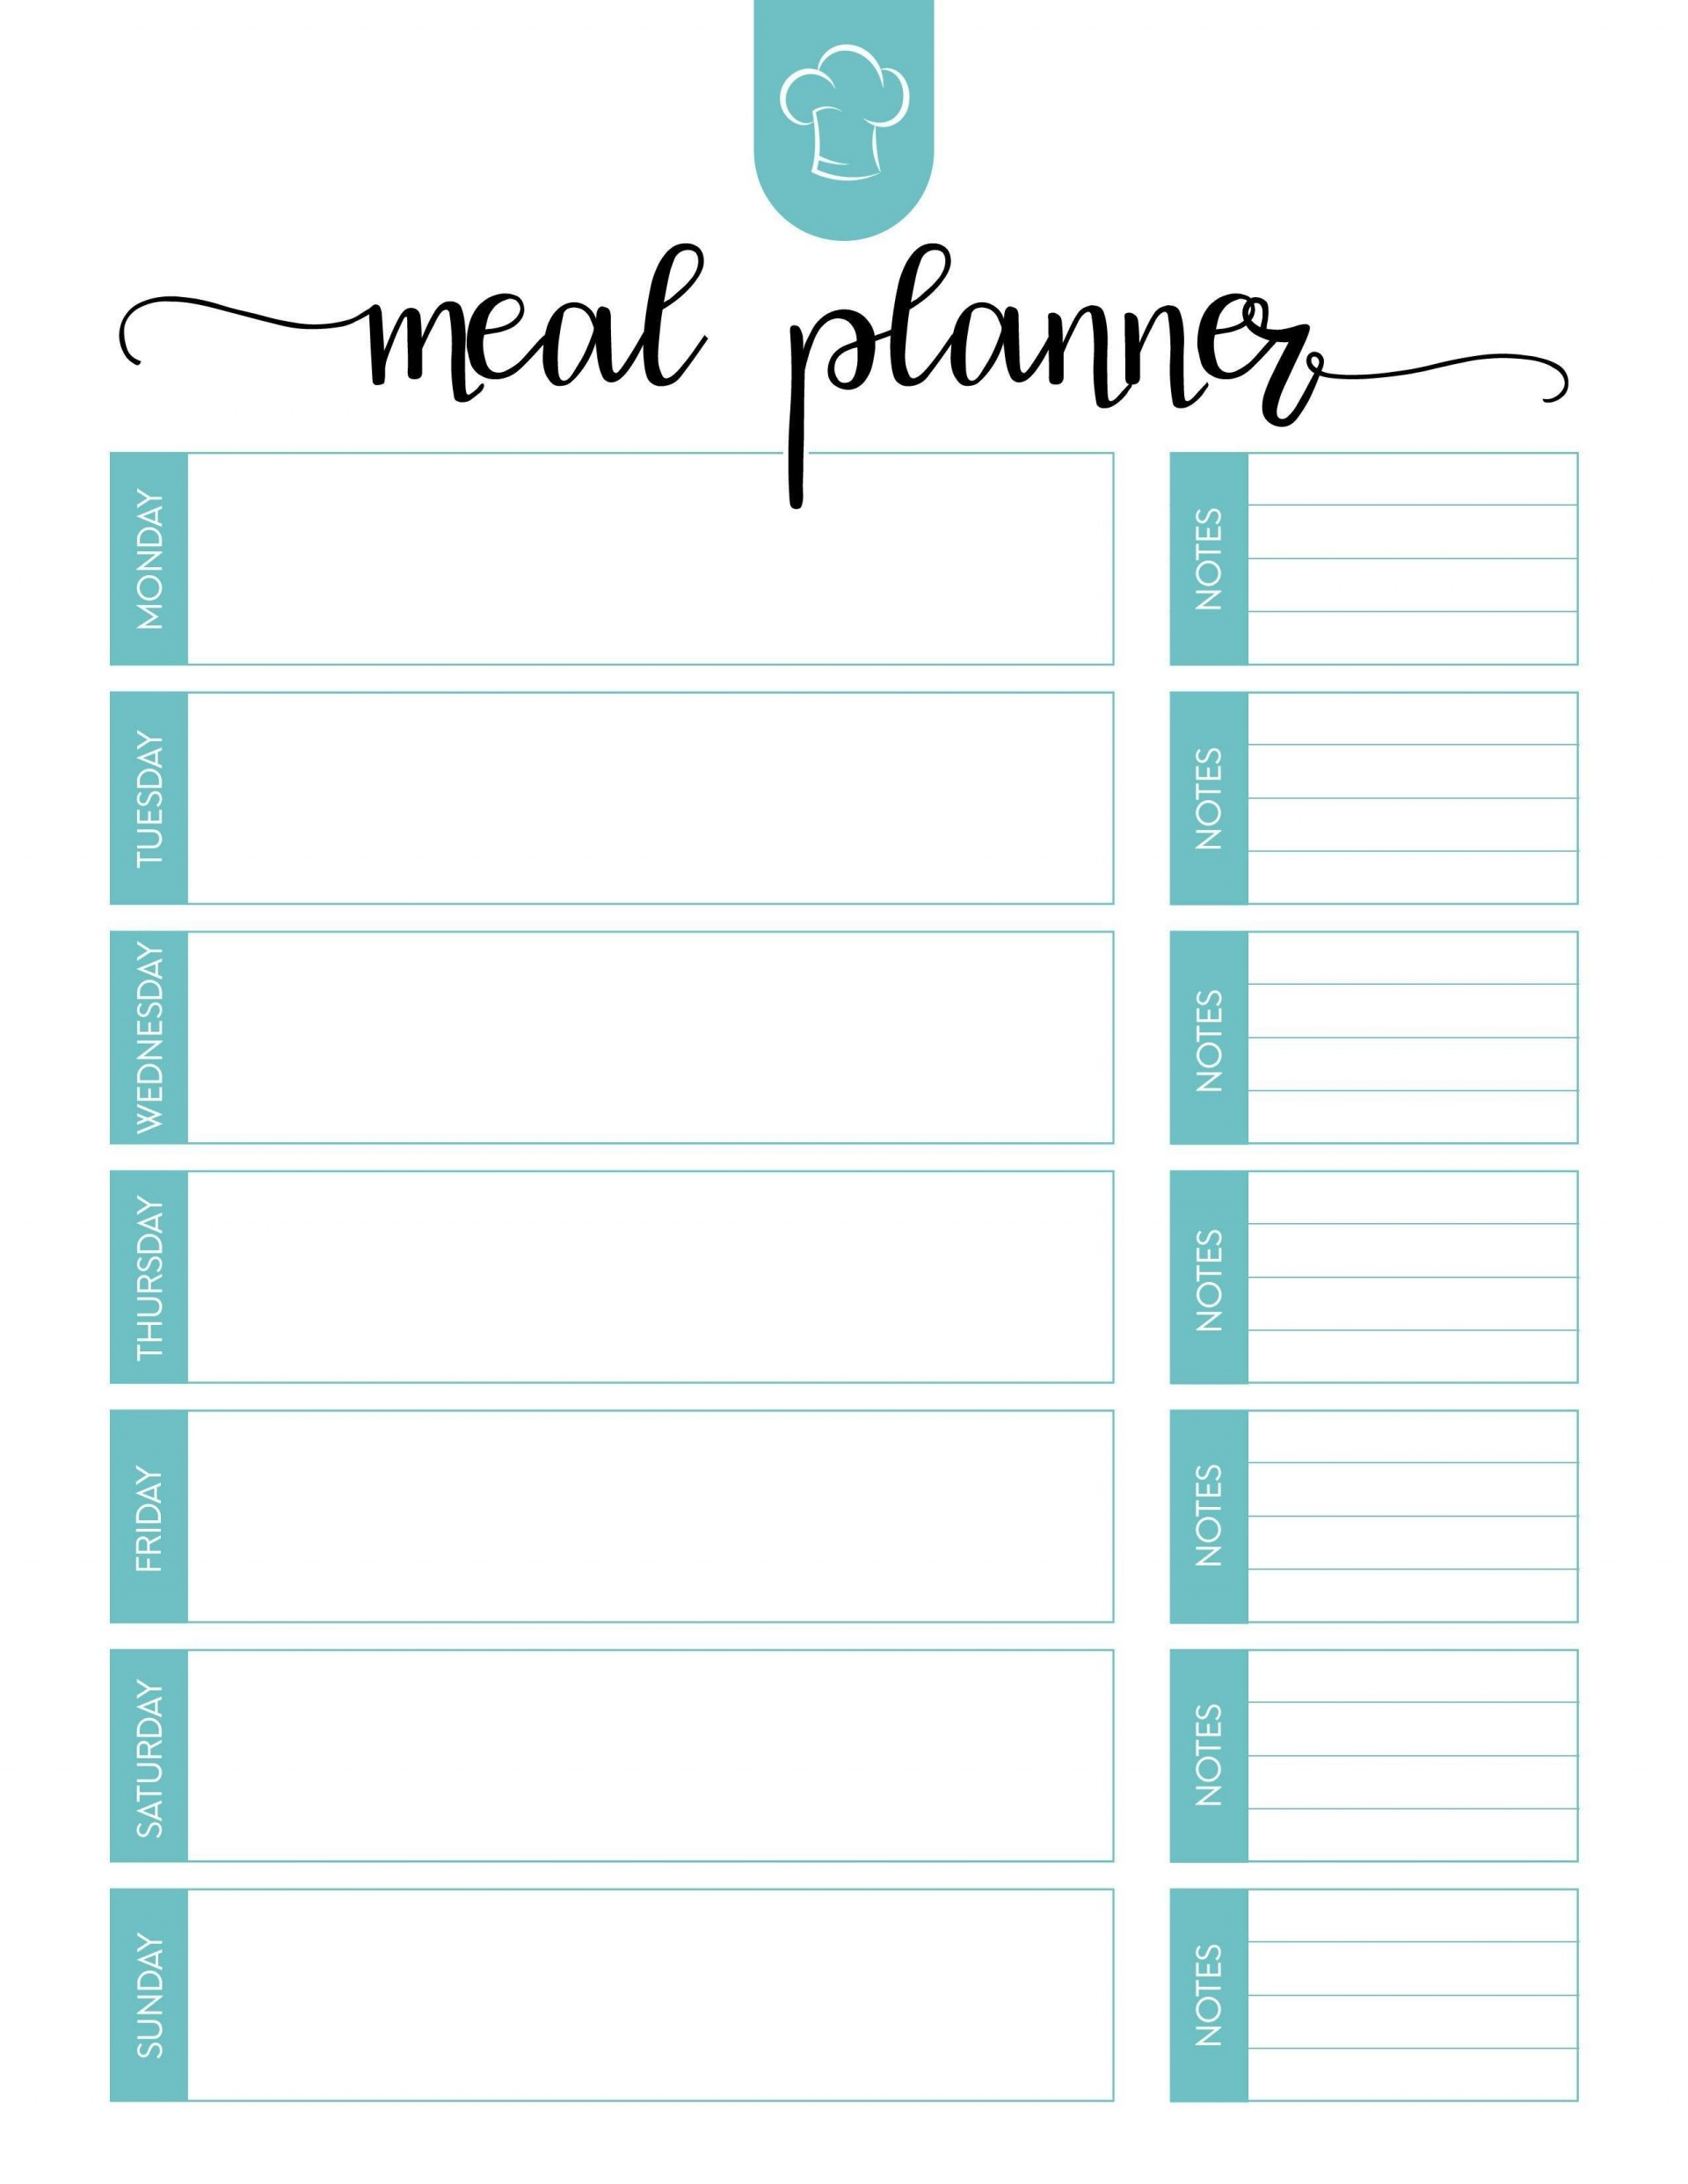 002 Unique Free Food Planner Template Highest Quality  Printable Weekly Meal With Grocery List Diary Download Editable Word1920